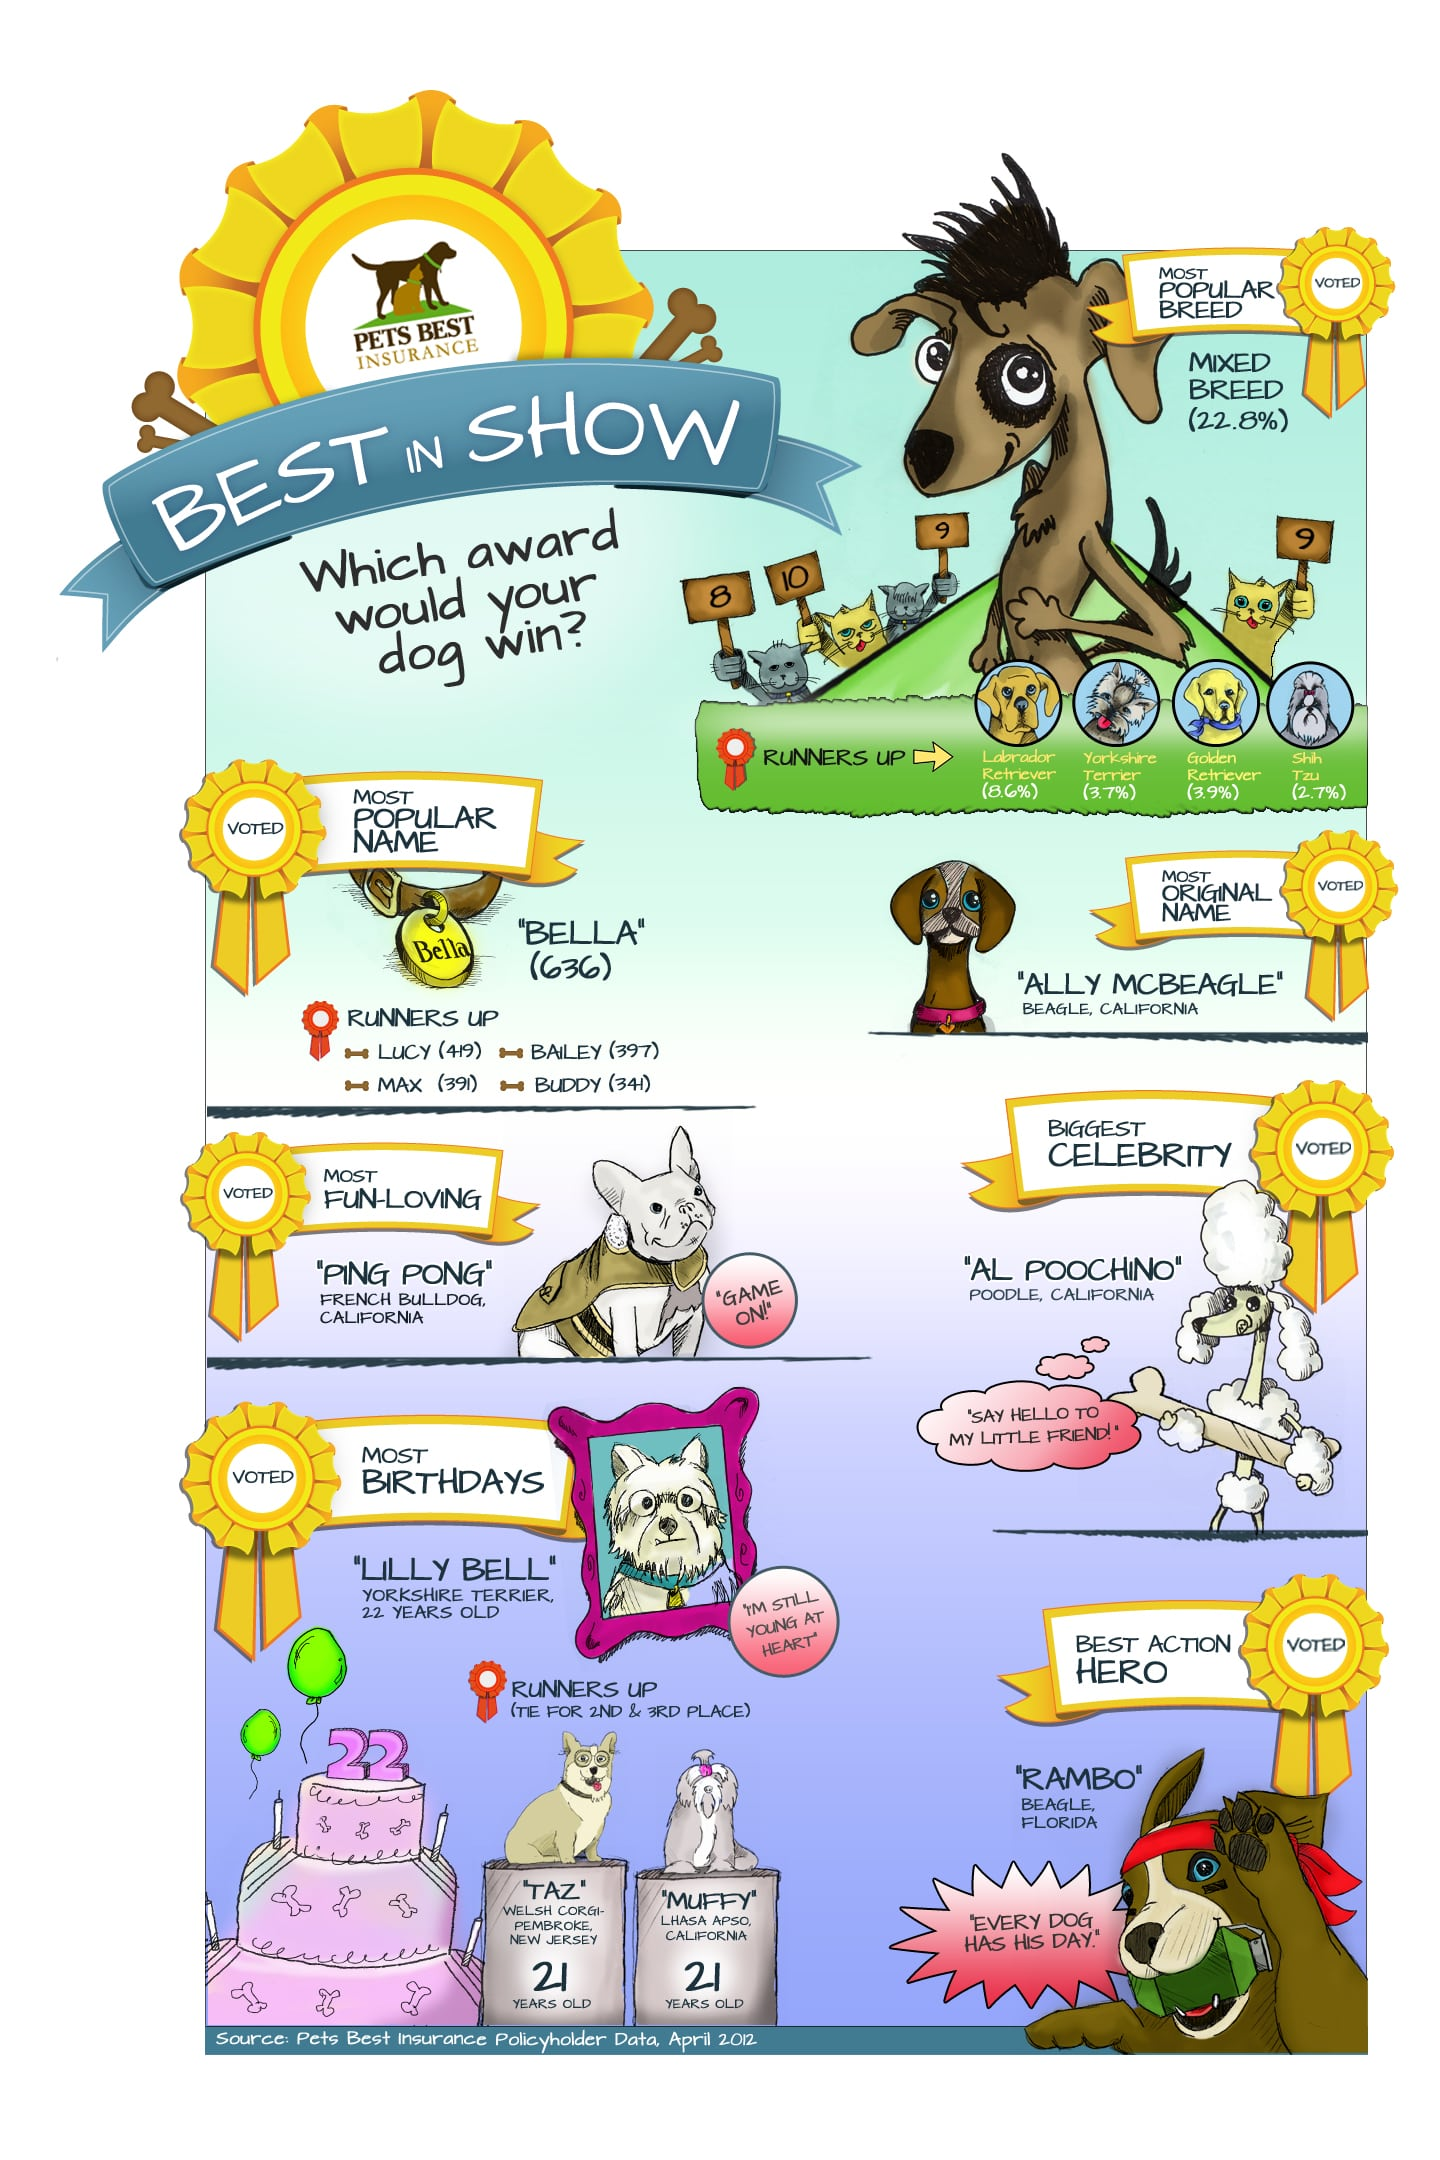 The Pets Best Insurance Dog Best In Show Awards